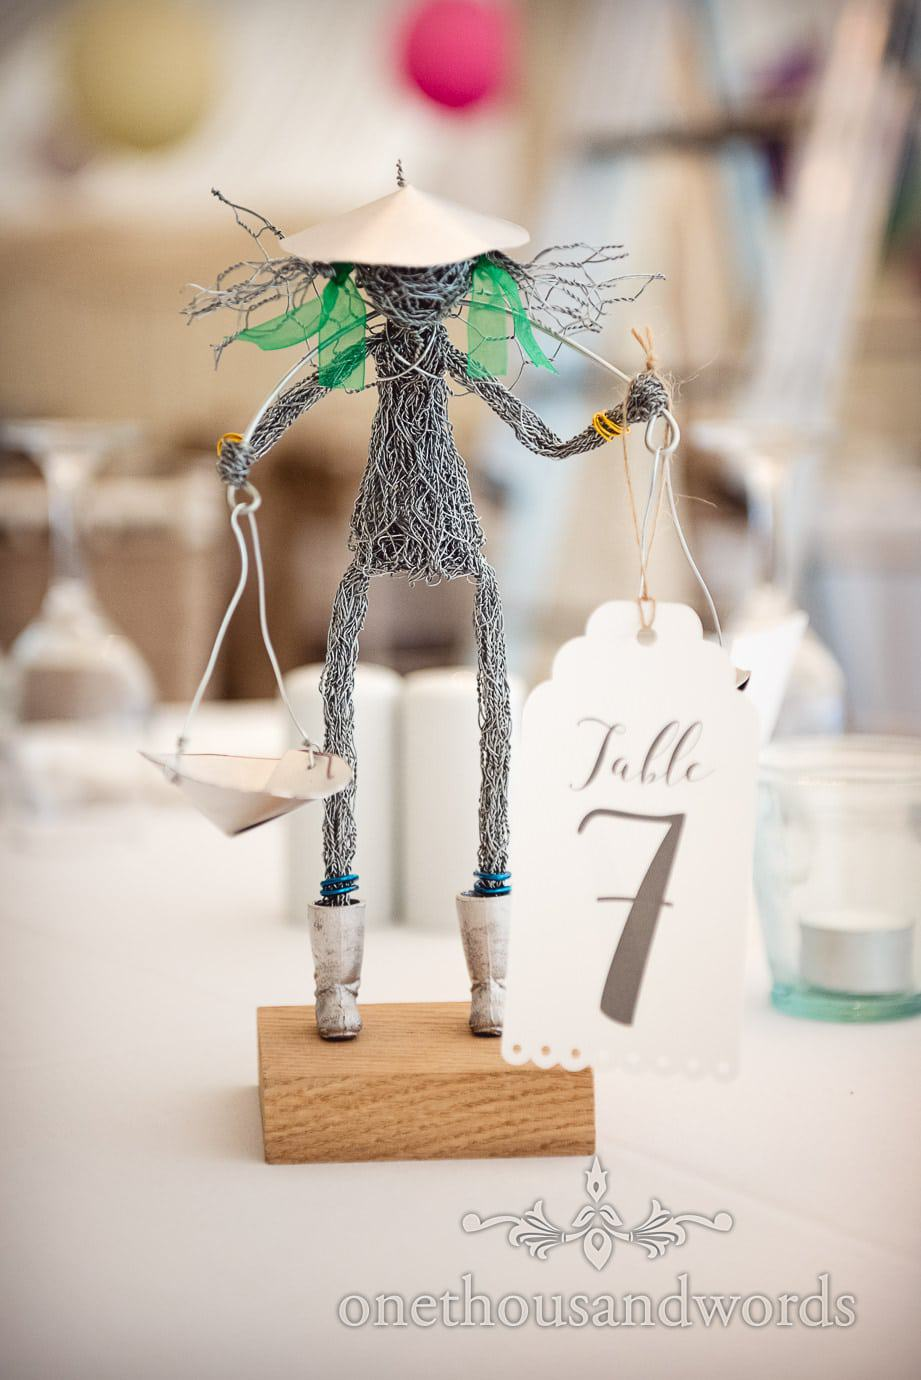 Wedding table number character made from twisted wire